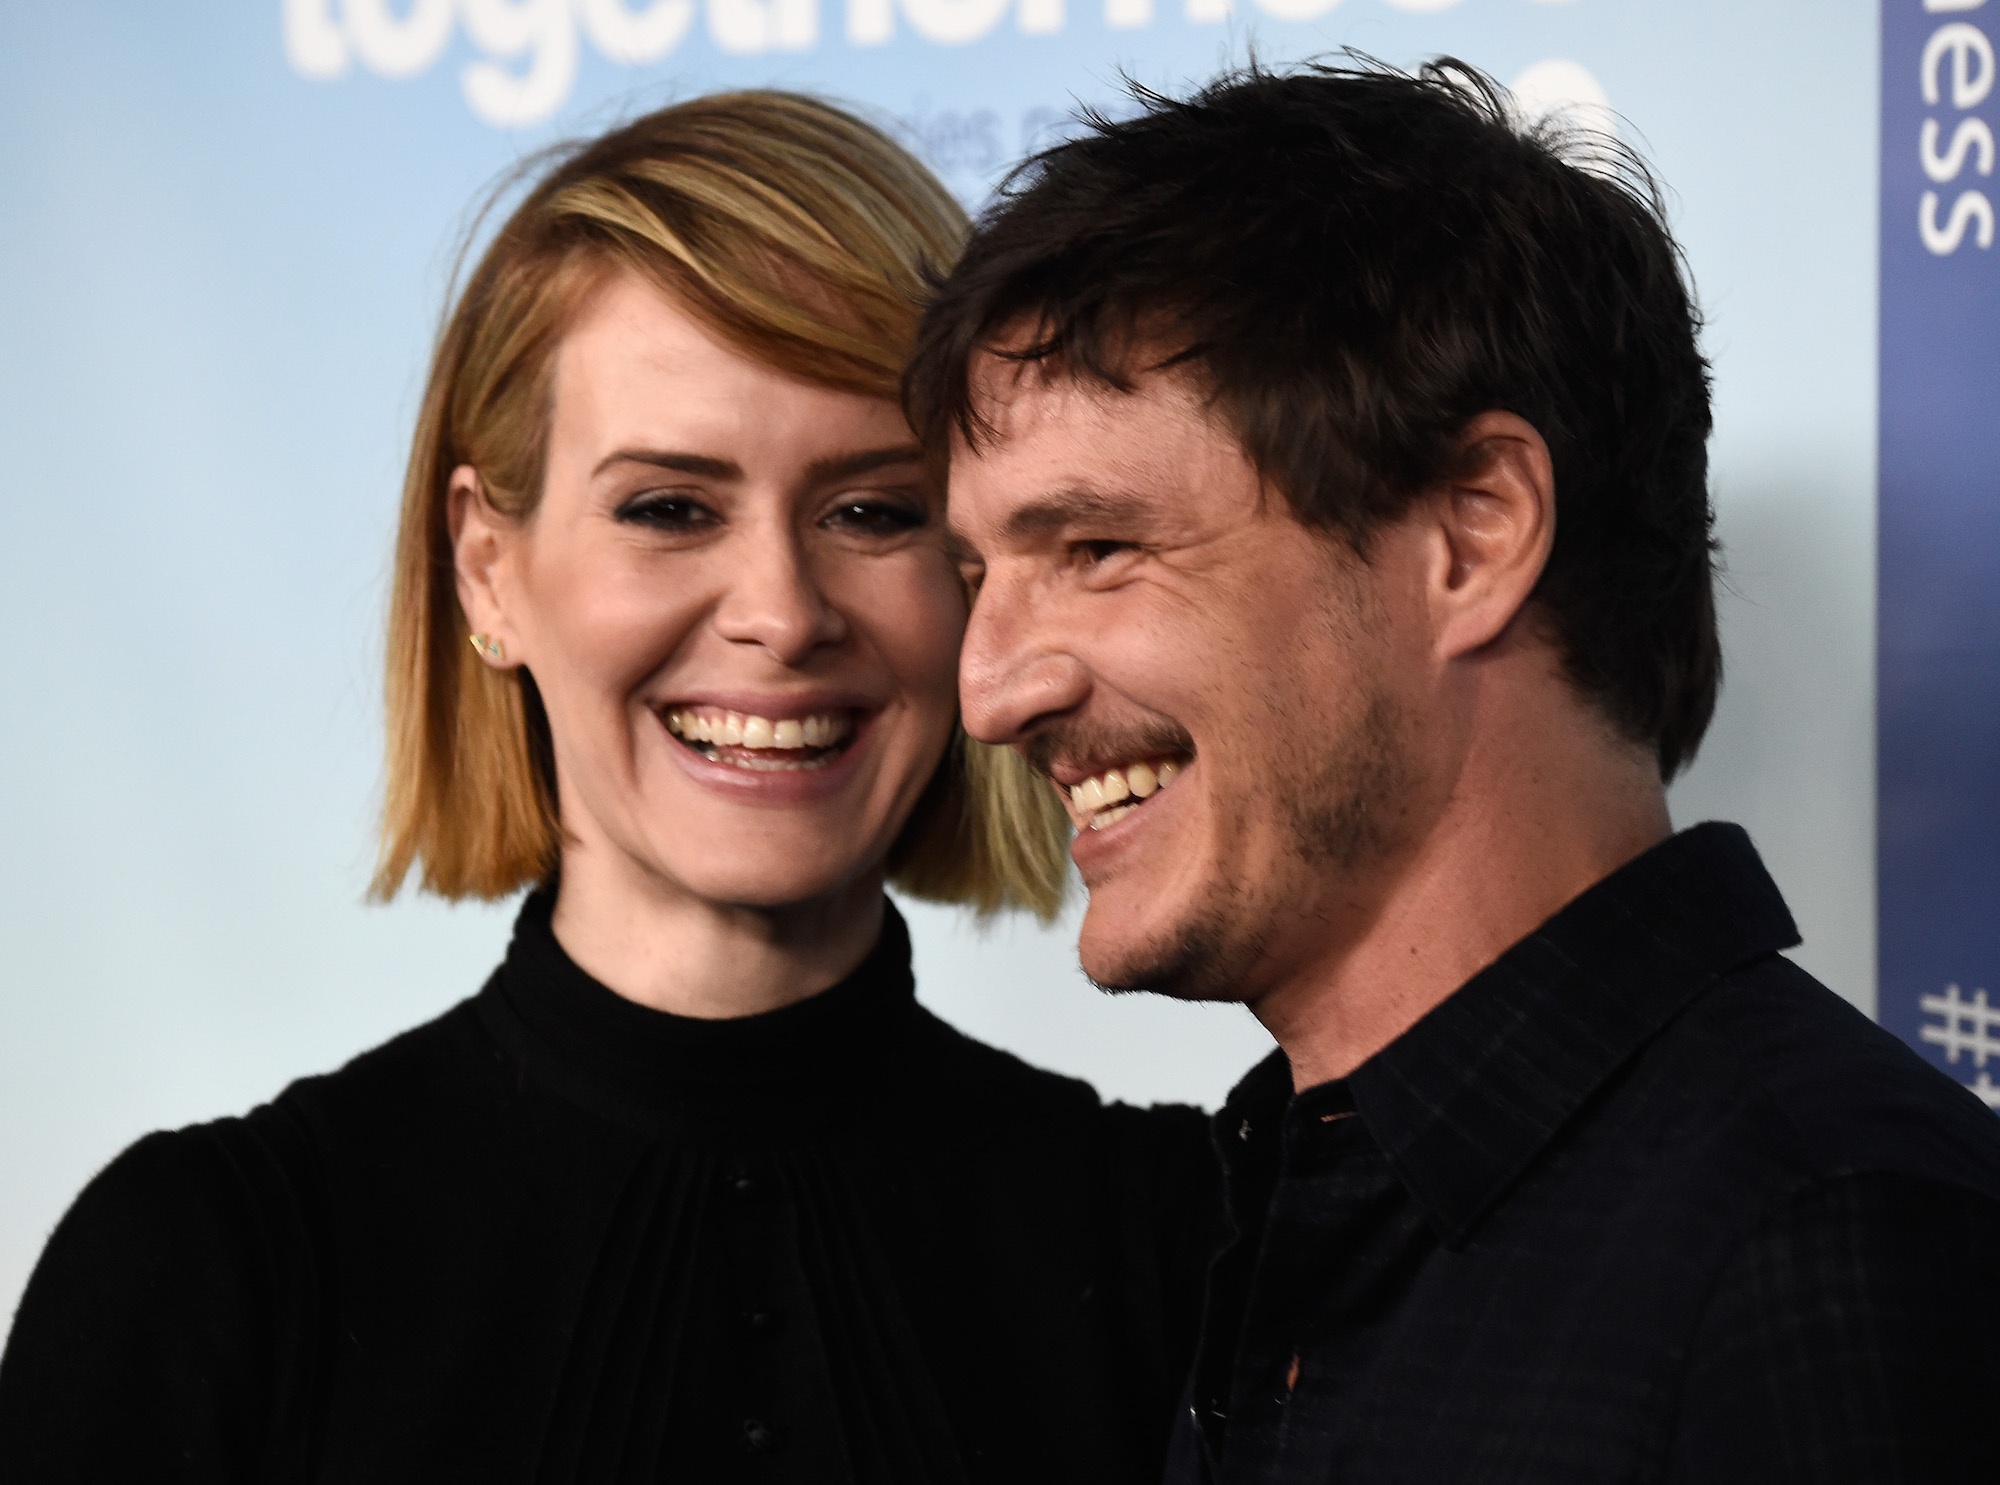 Sarah Paulson and Pedro Pascal arrive at the Premiere of HBO's 'Togetherness' at Avalon on Jan. 6, 2015